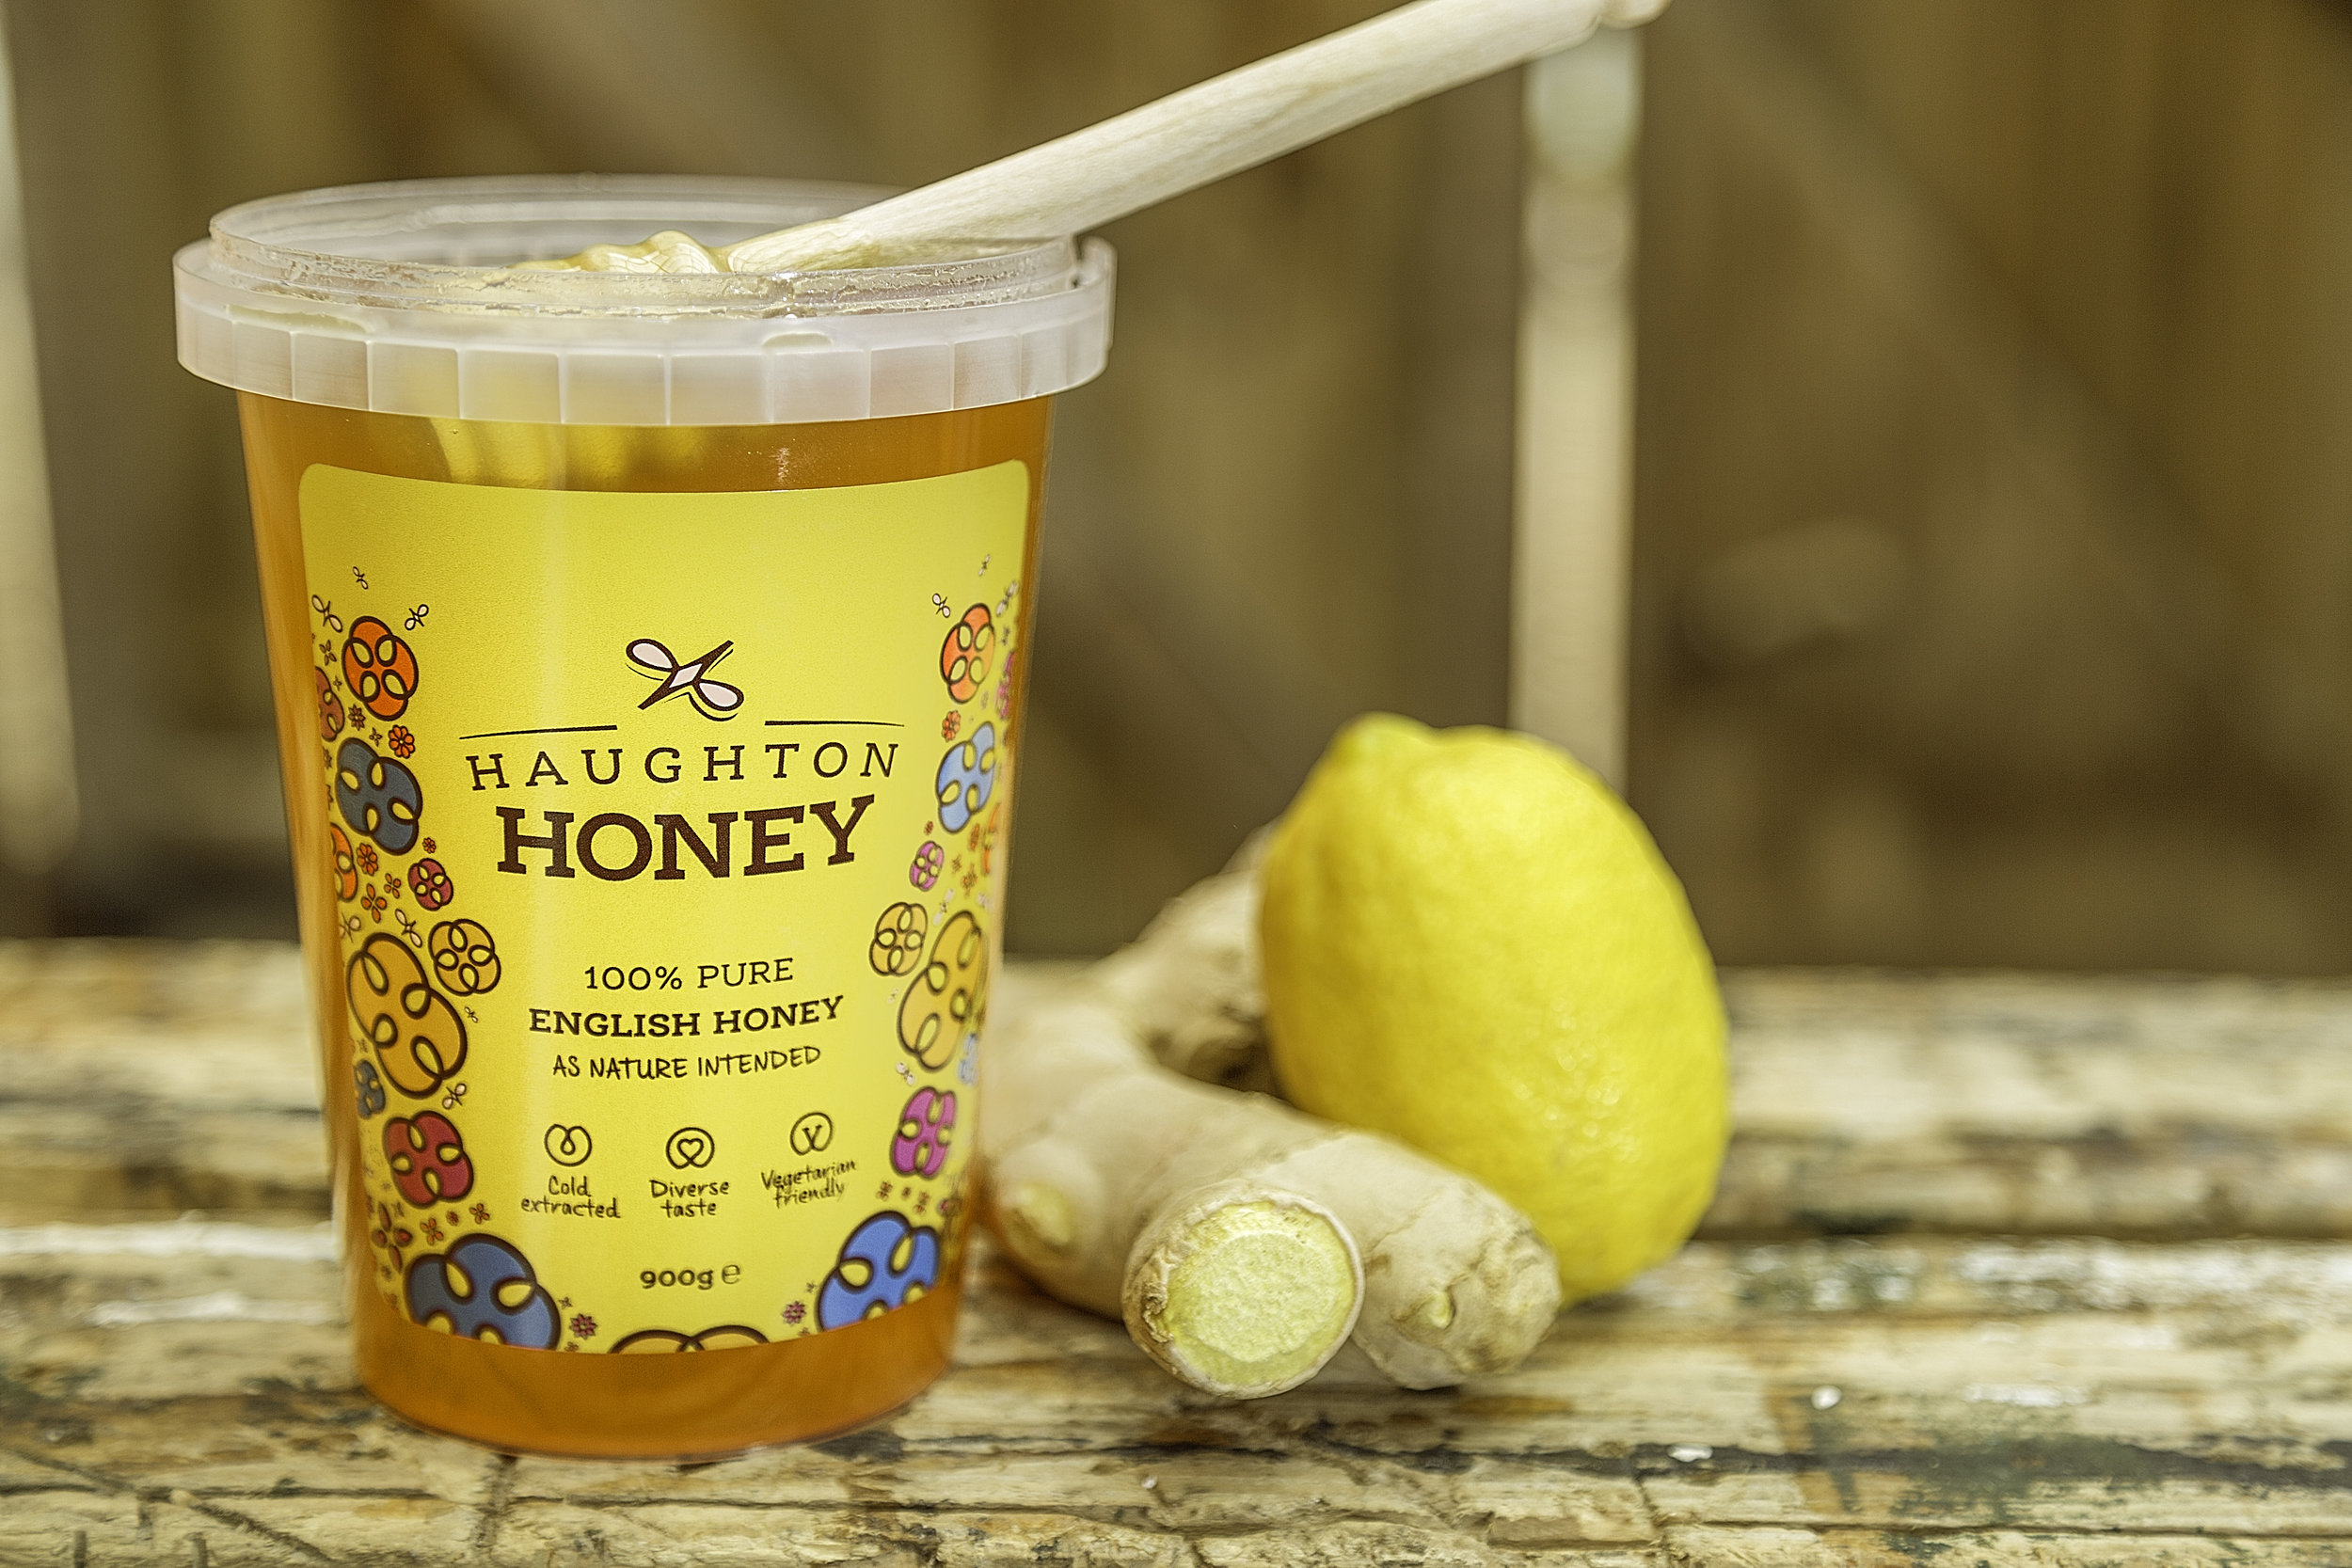 Haughton Honey product situational